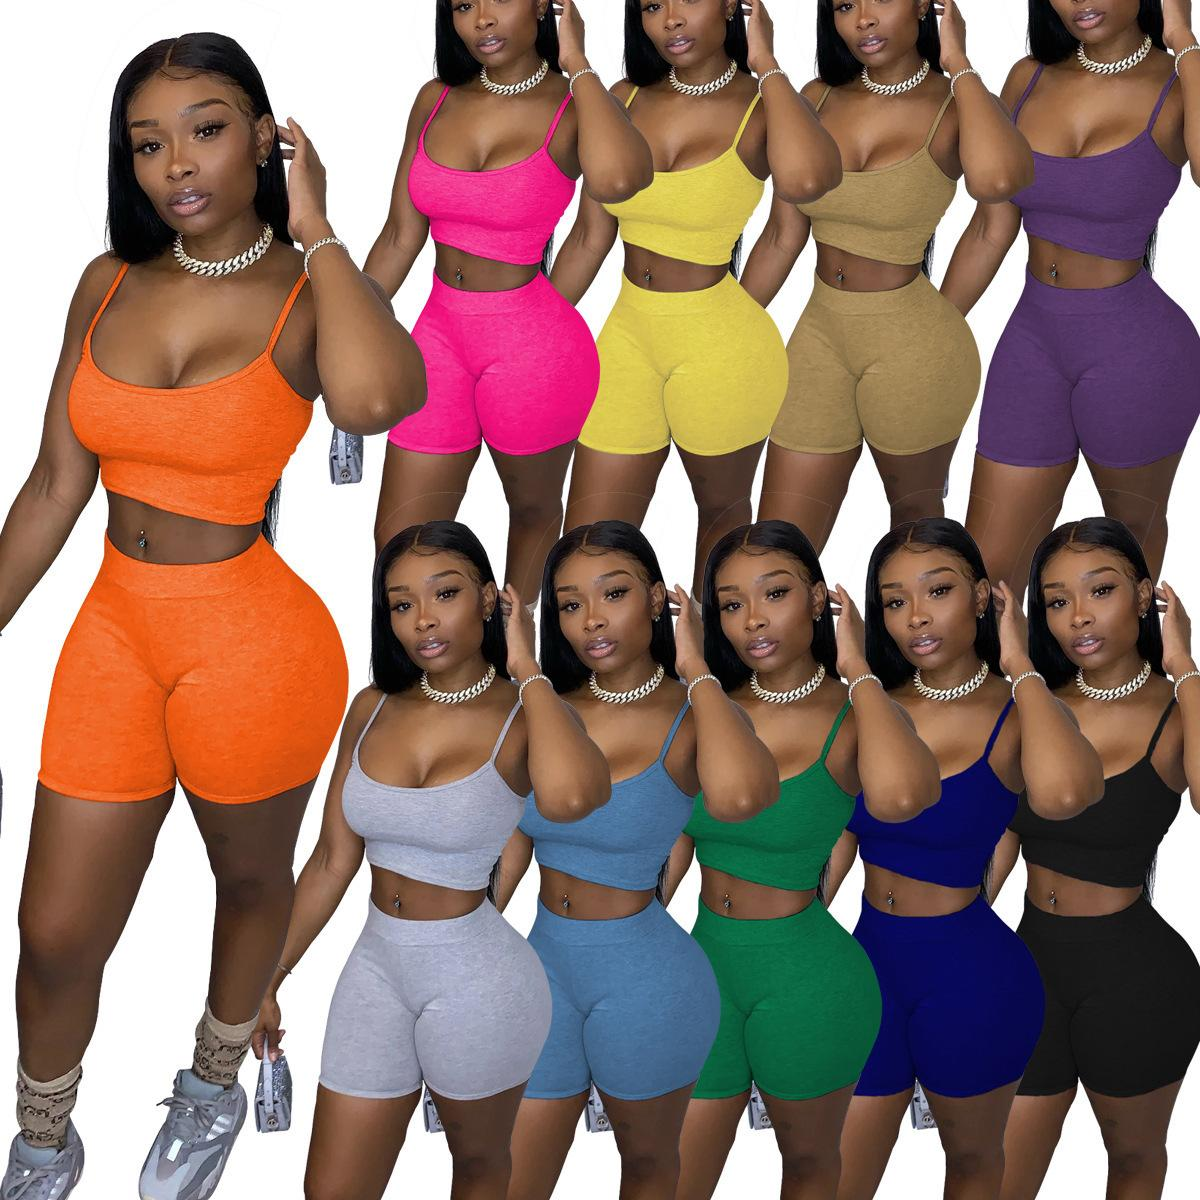 Designer Sommer-Frauen 2-teiliges Set Shorts Outfits Anzug Solid Color Casual Women S Kleidung Sexy Strapse Tops Anzug Plus Size C671-1